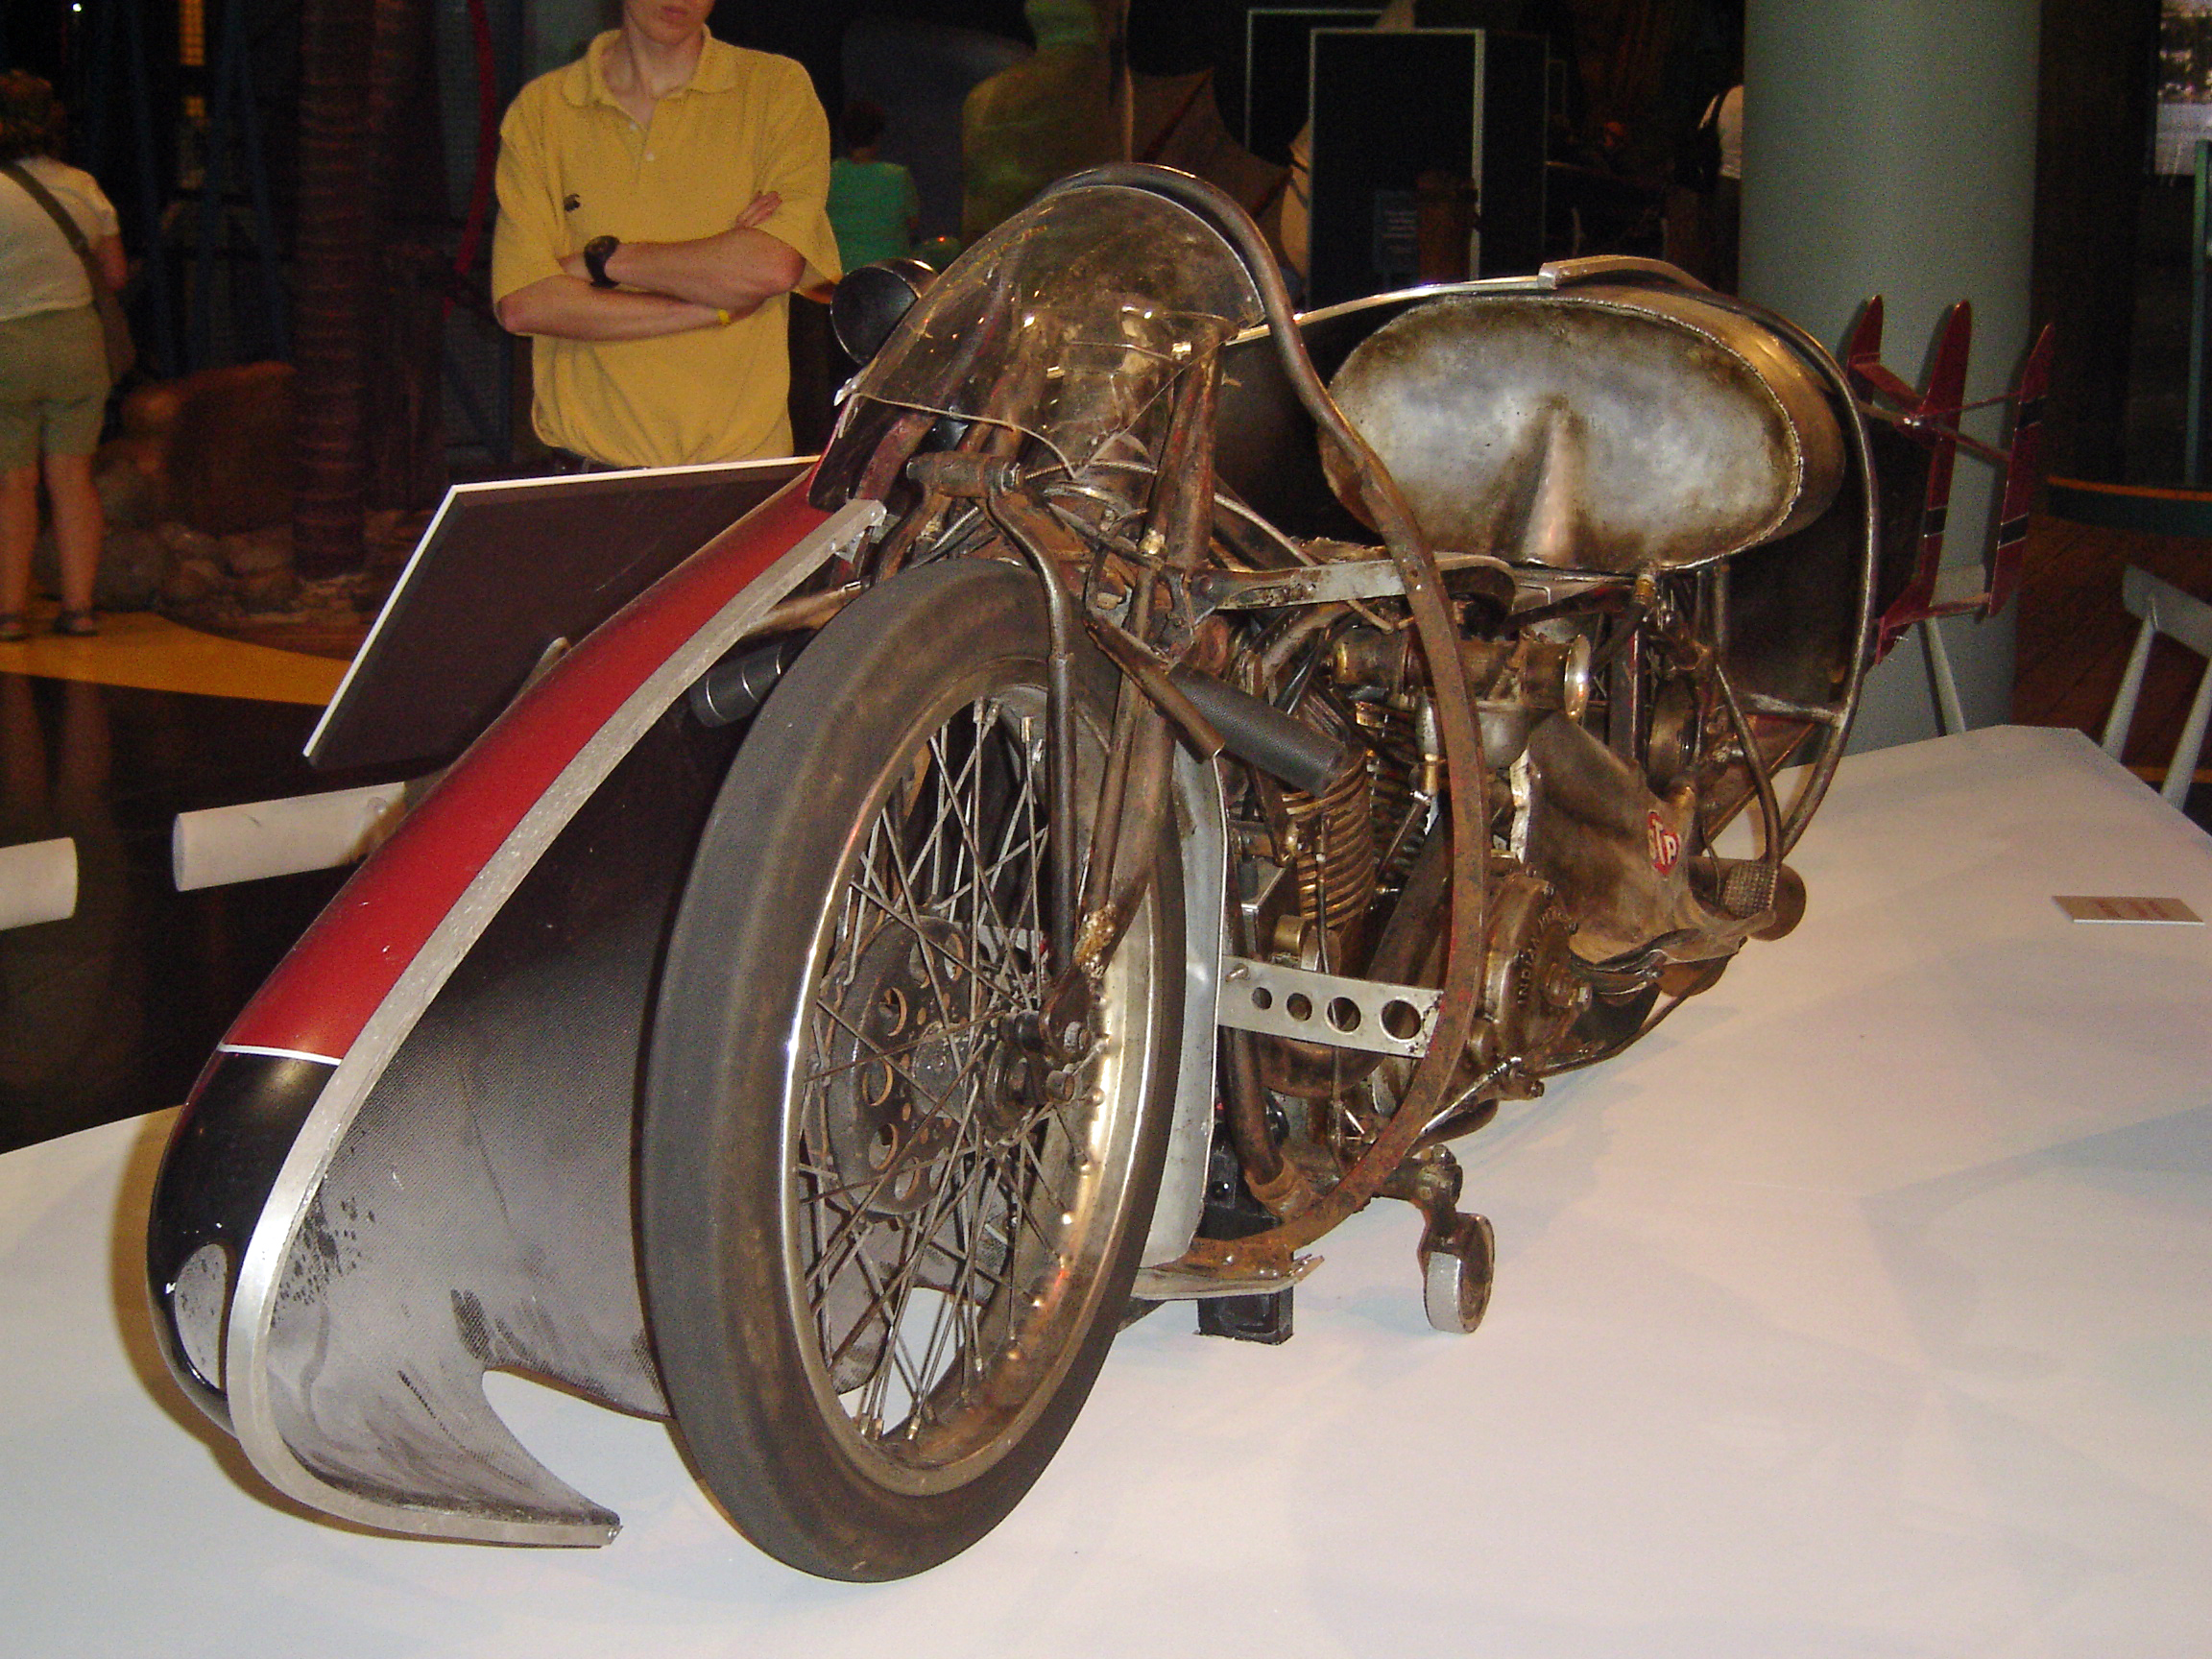 It may not look like much, but Bert Munro's modified 1920 Indian set a land speed record in 1967.